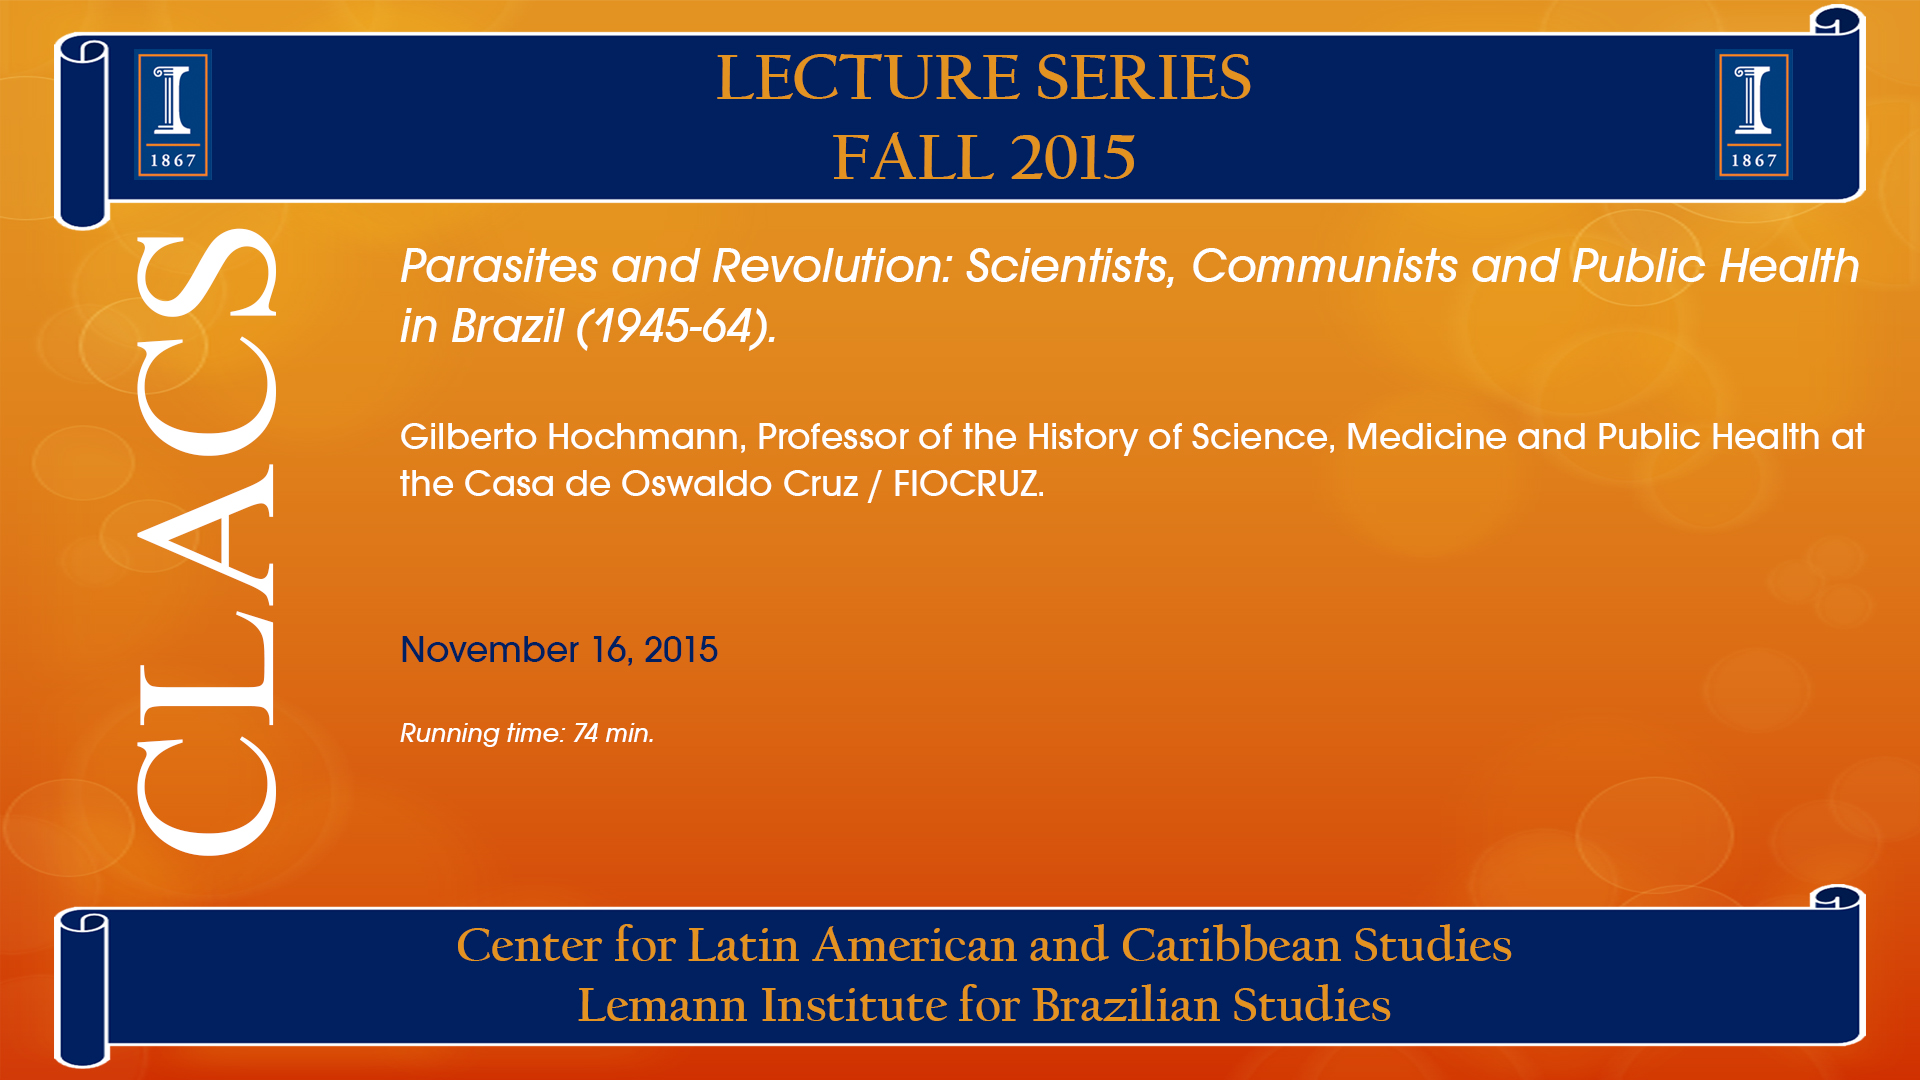 Parasites and Revolution: Scientists, Communists and Public Health in Brazil (1945-64).